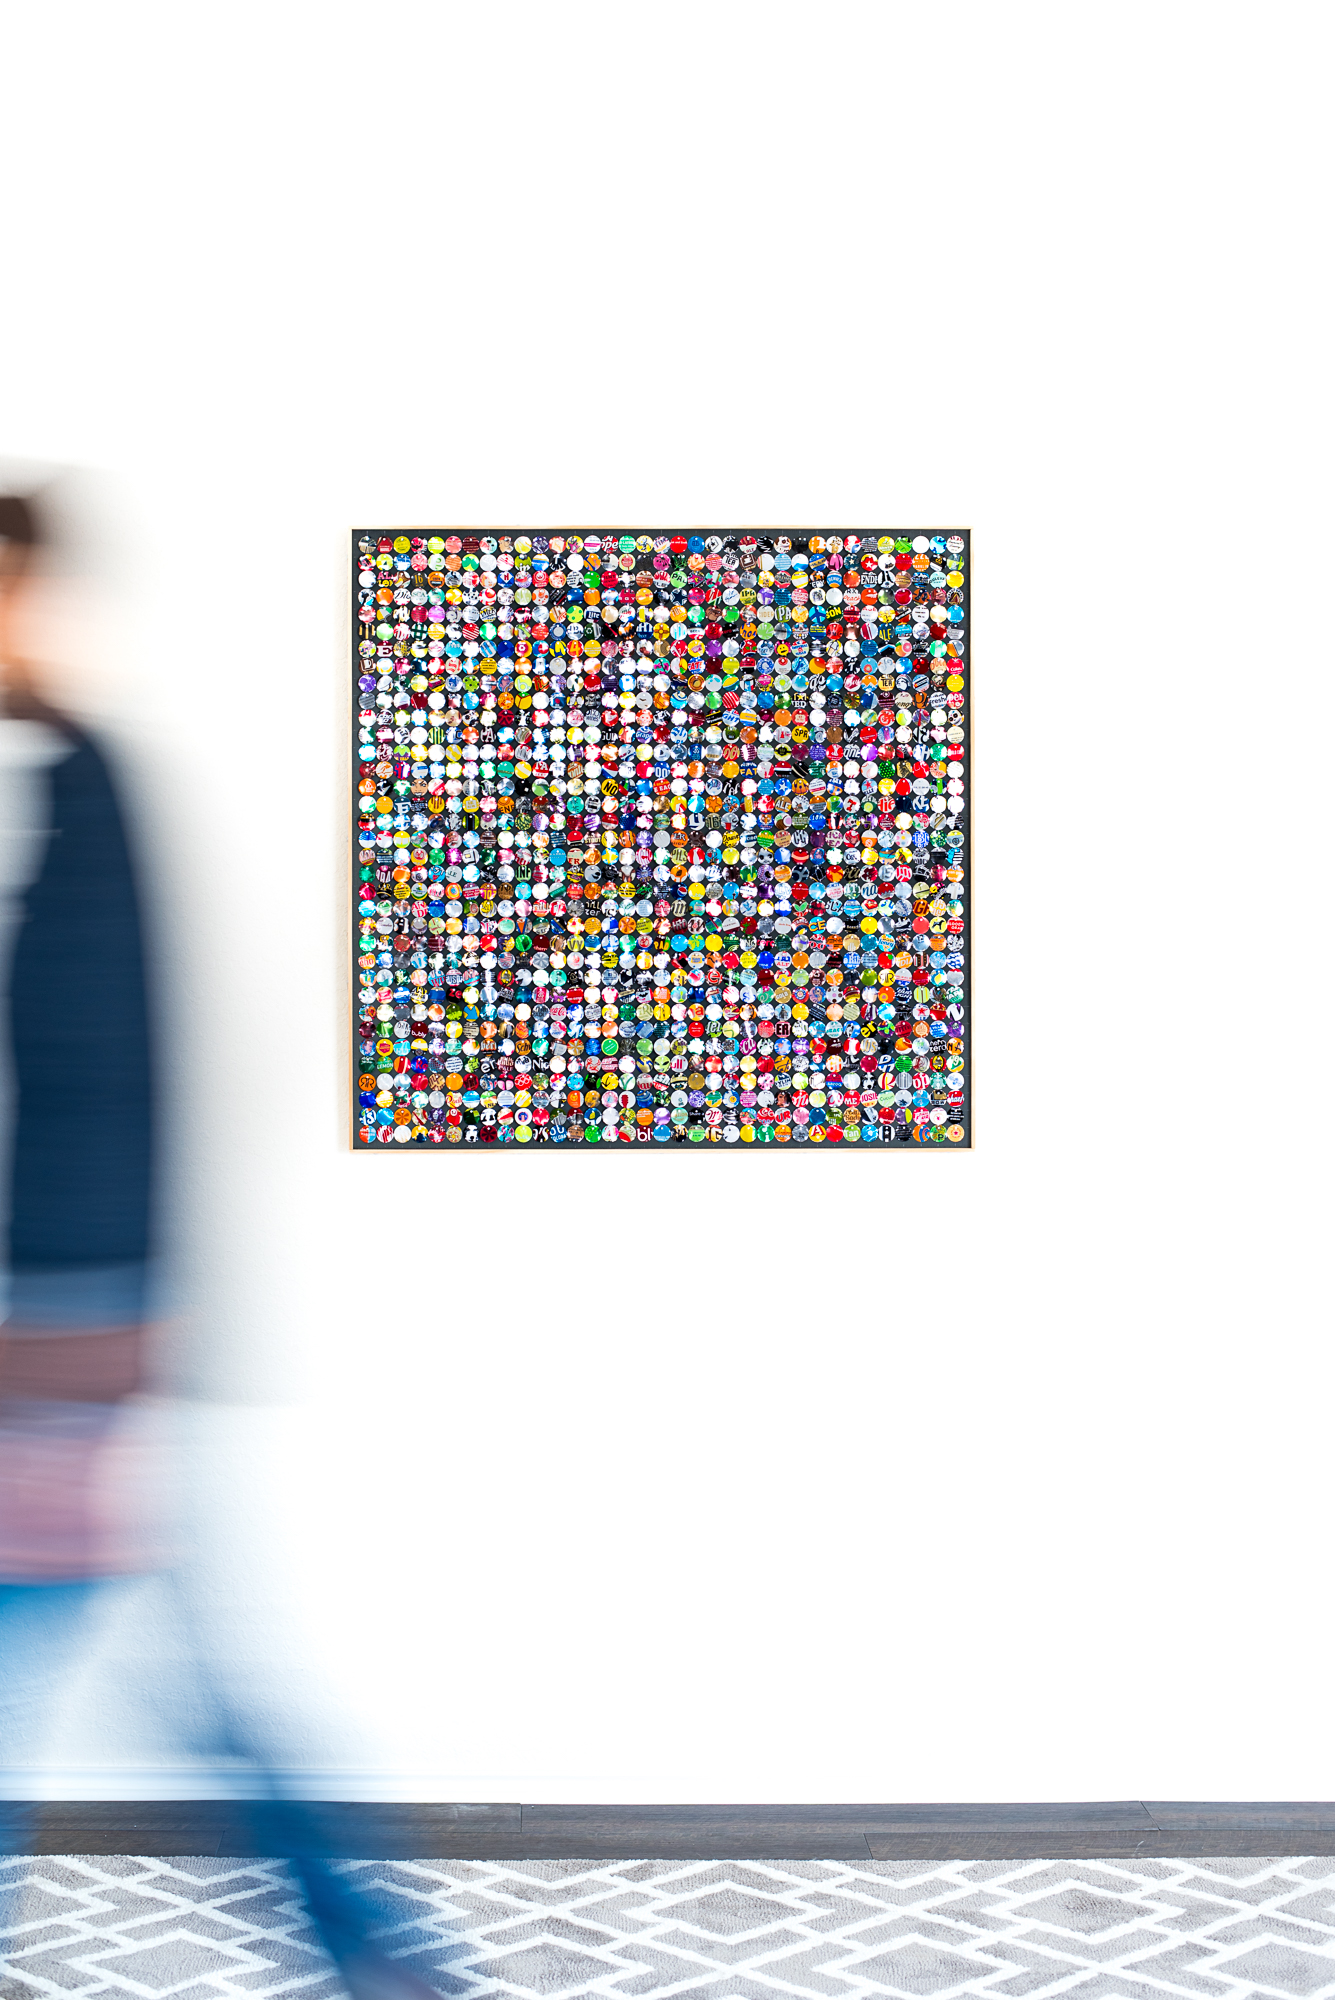 hannah-nemo-beer-can-recycled-moving-mosaic-person-walking-single-on-wall-36x36.jpg